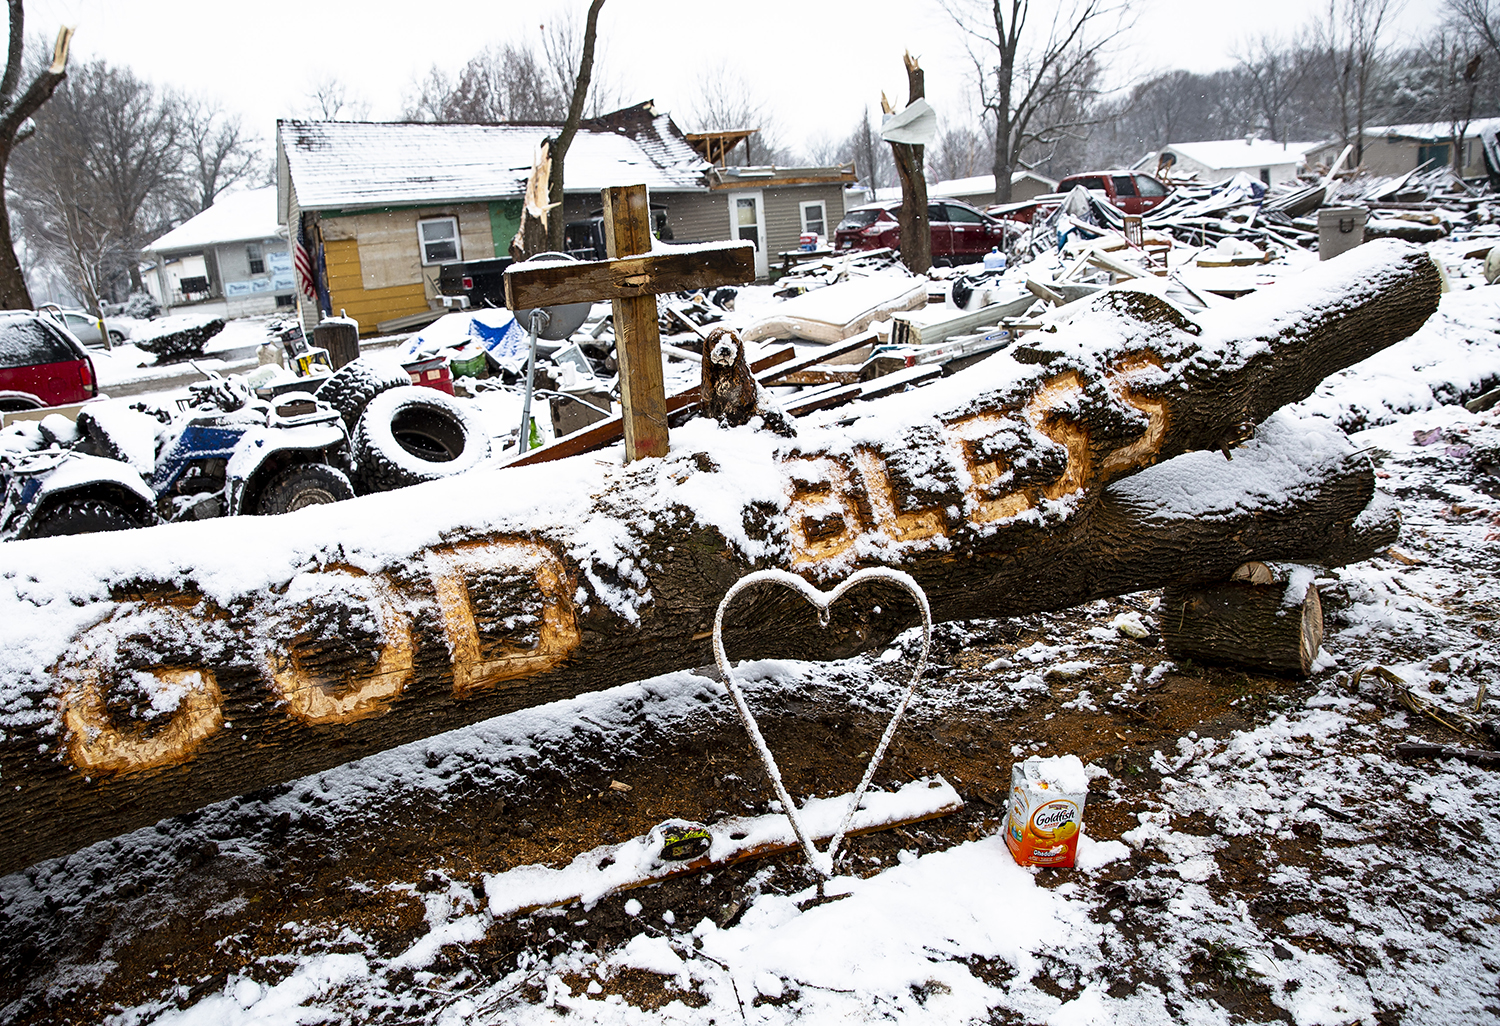 Steven Tirpak carved an uplifting message in a tree felled by the tornado that destroyed his home on Coal Street in Taylorville on Saturday. The tree was photographed Thursday, Dec. 6, 2018 on Coal Street Taylorville, Ill. [Rich Saal/The State Journal-Register]